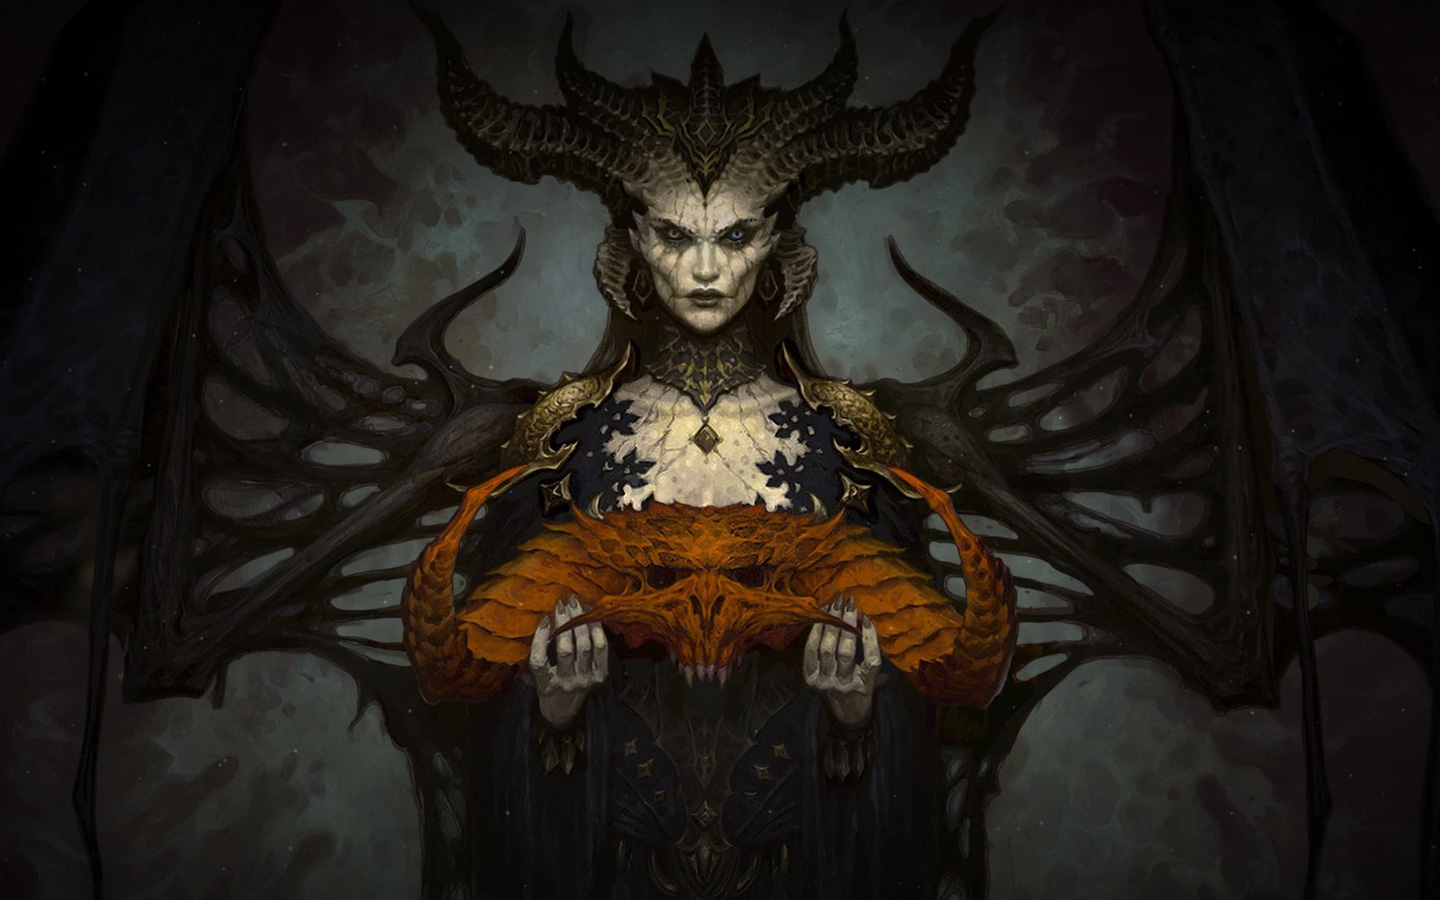 Free Diablo IV Wallpaper in 1440x900